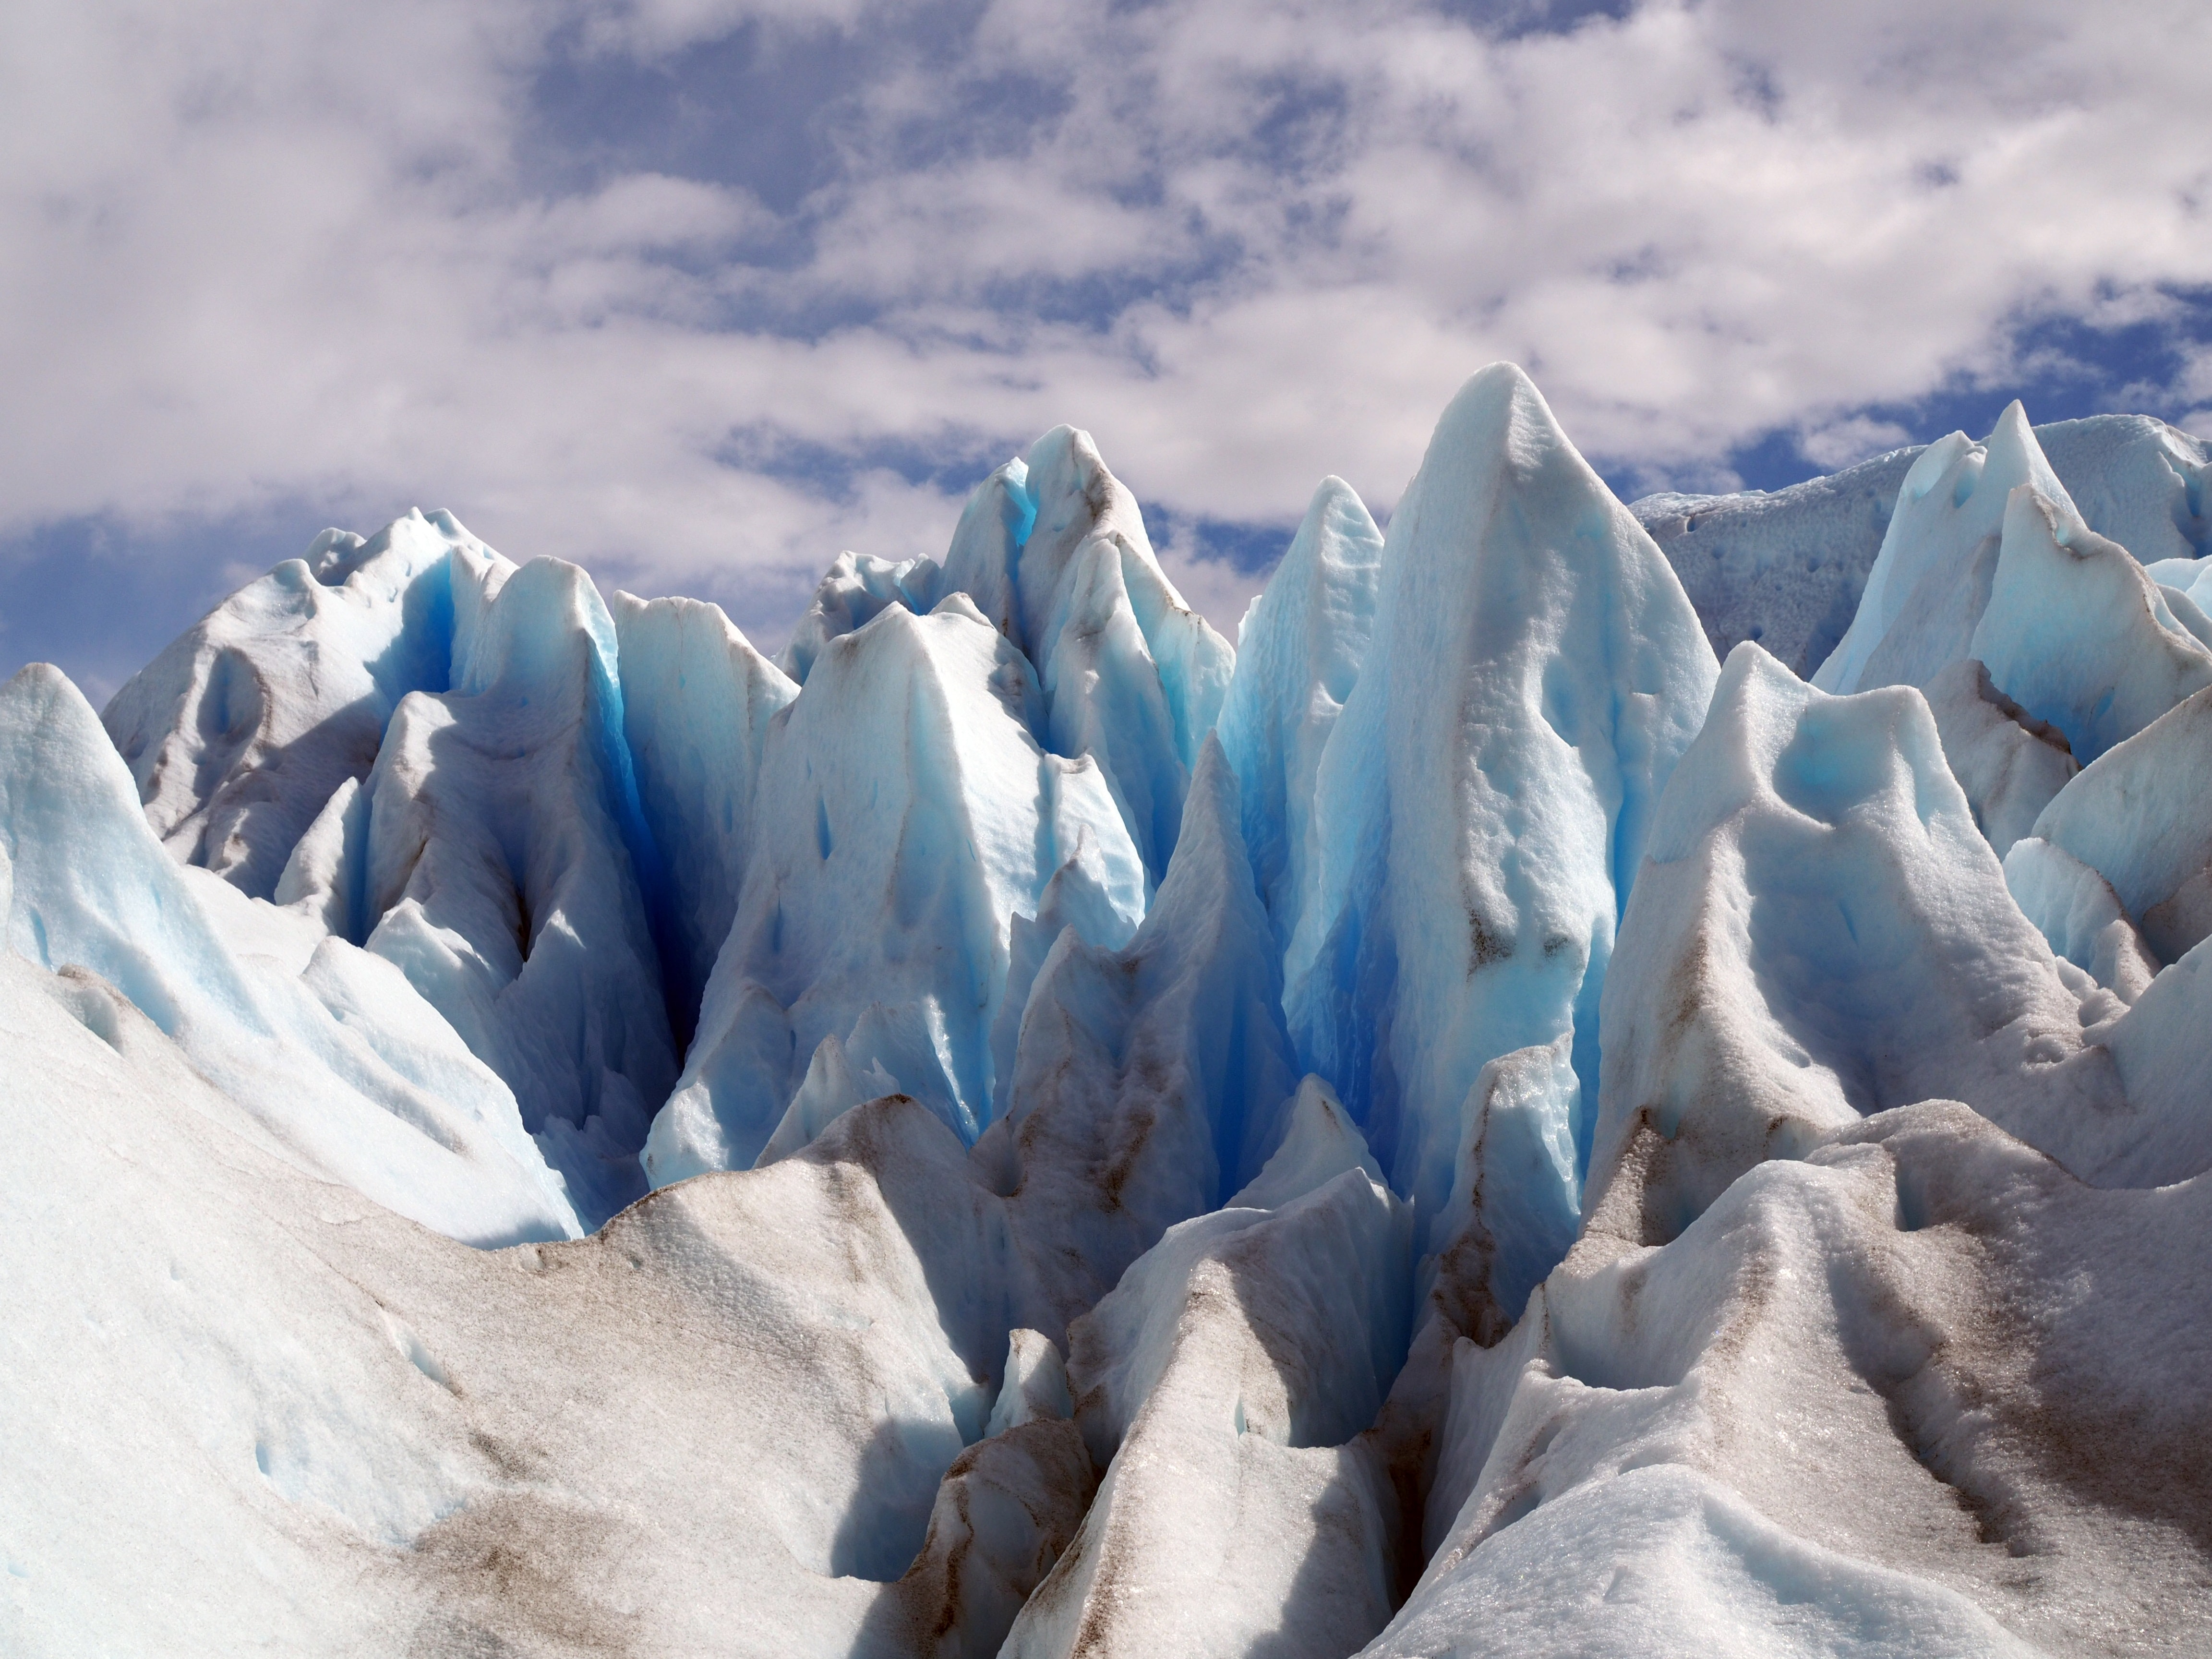 ice mountains under white clouds